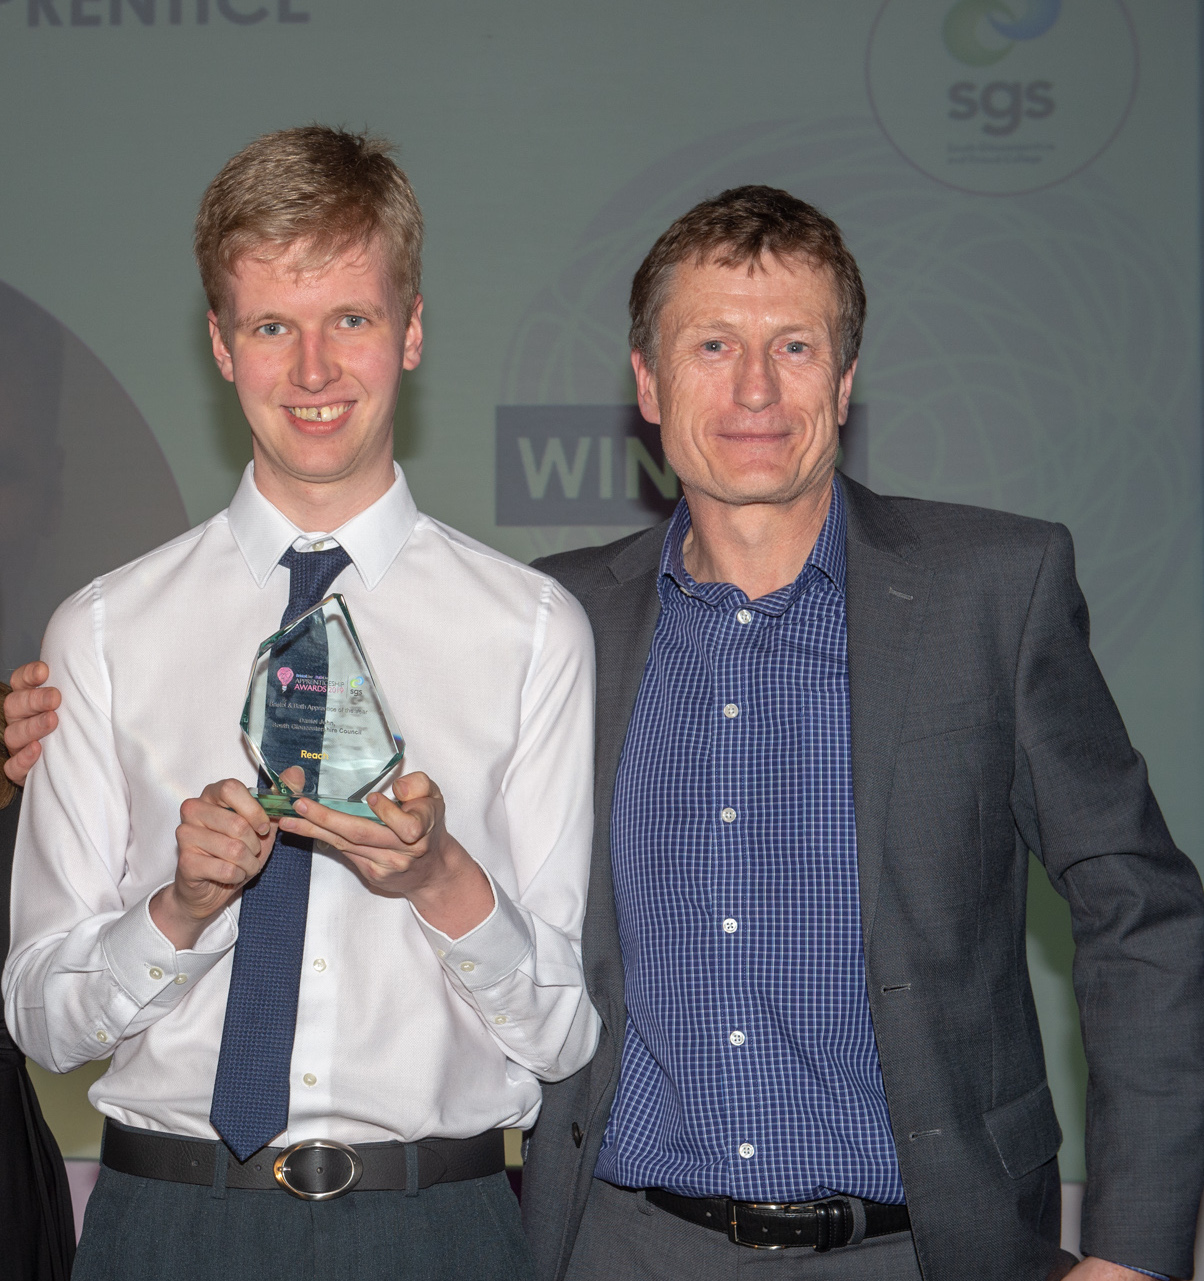 Exceptional SGS student wins Apprentice of the Year